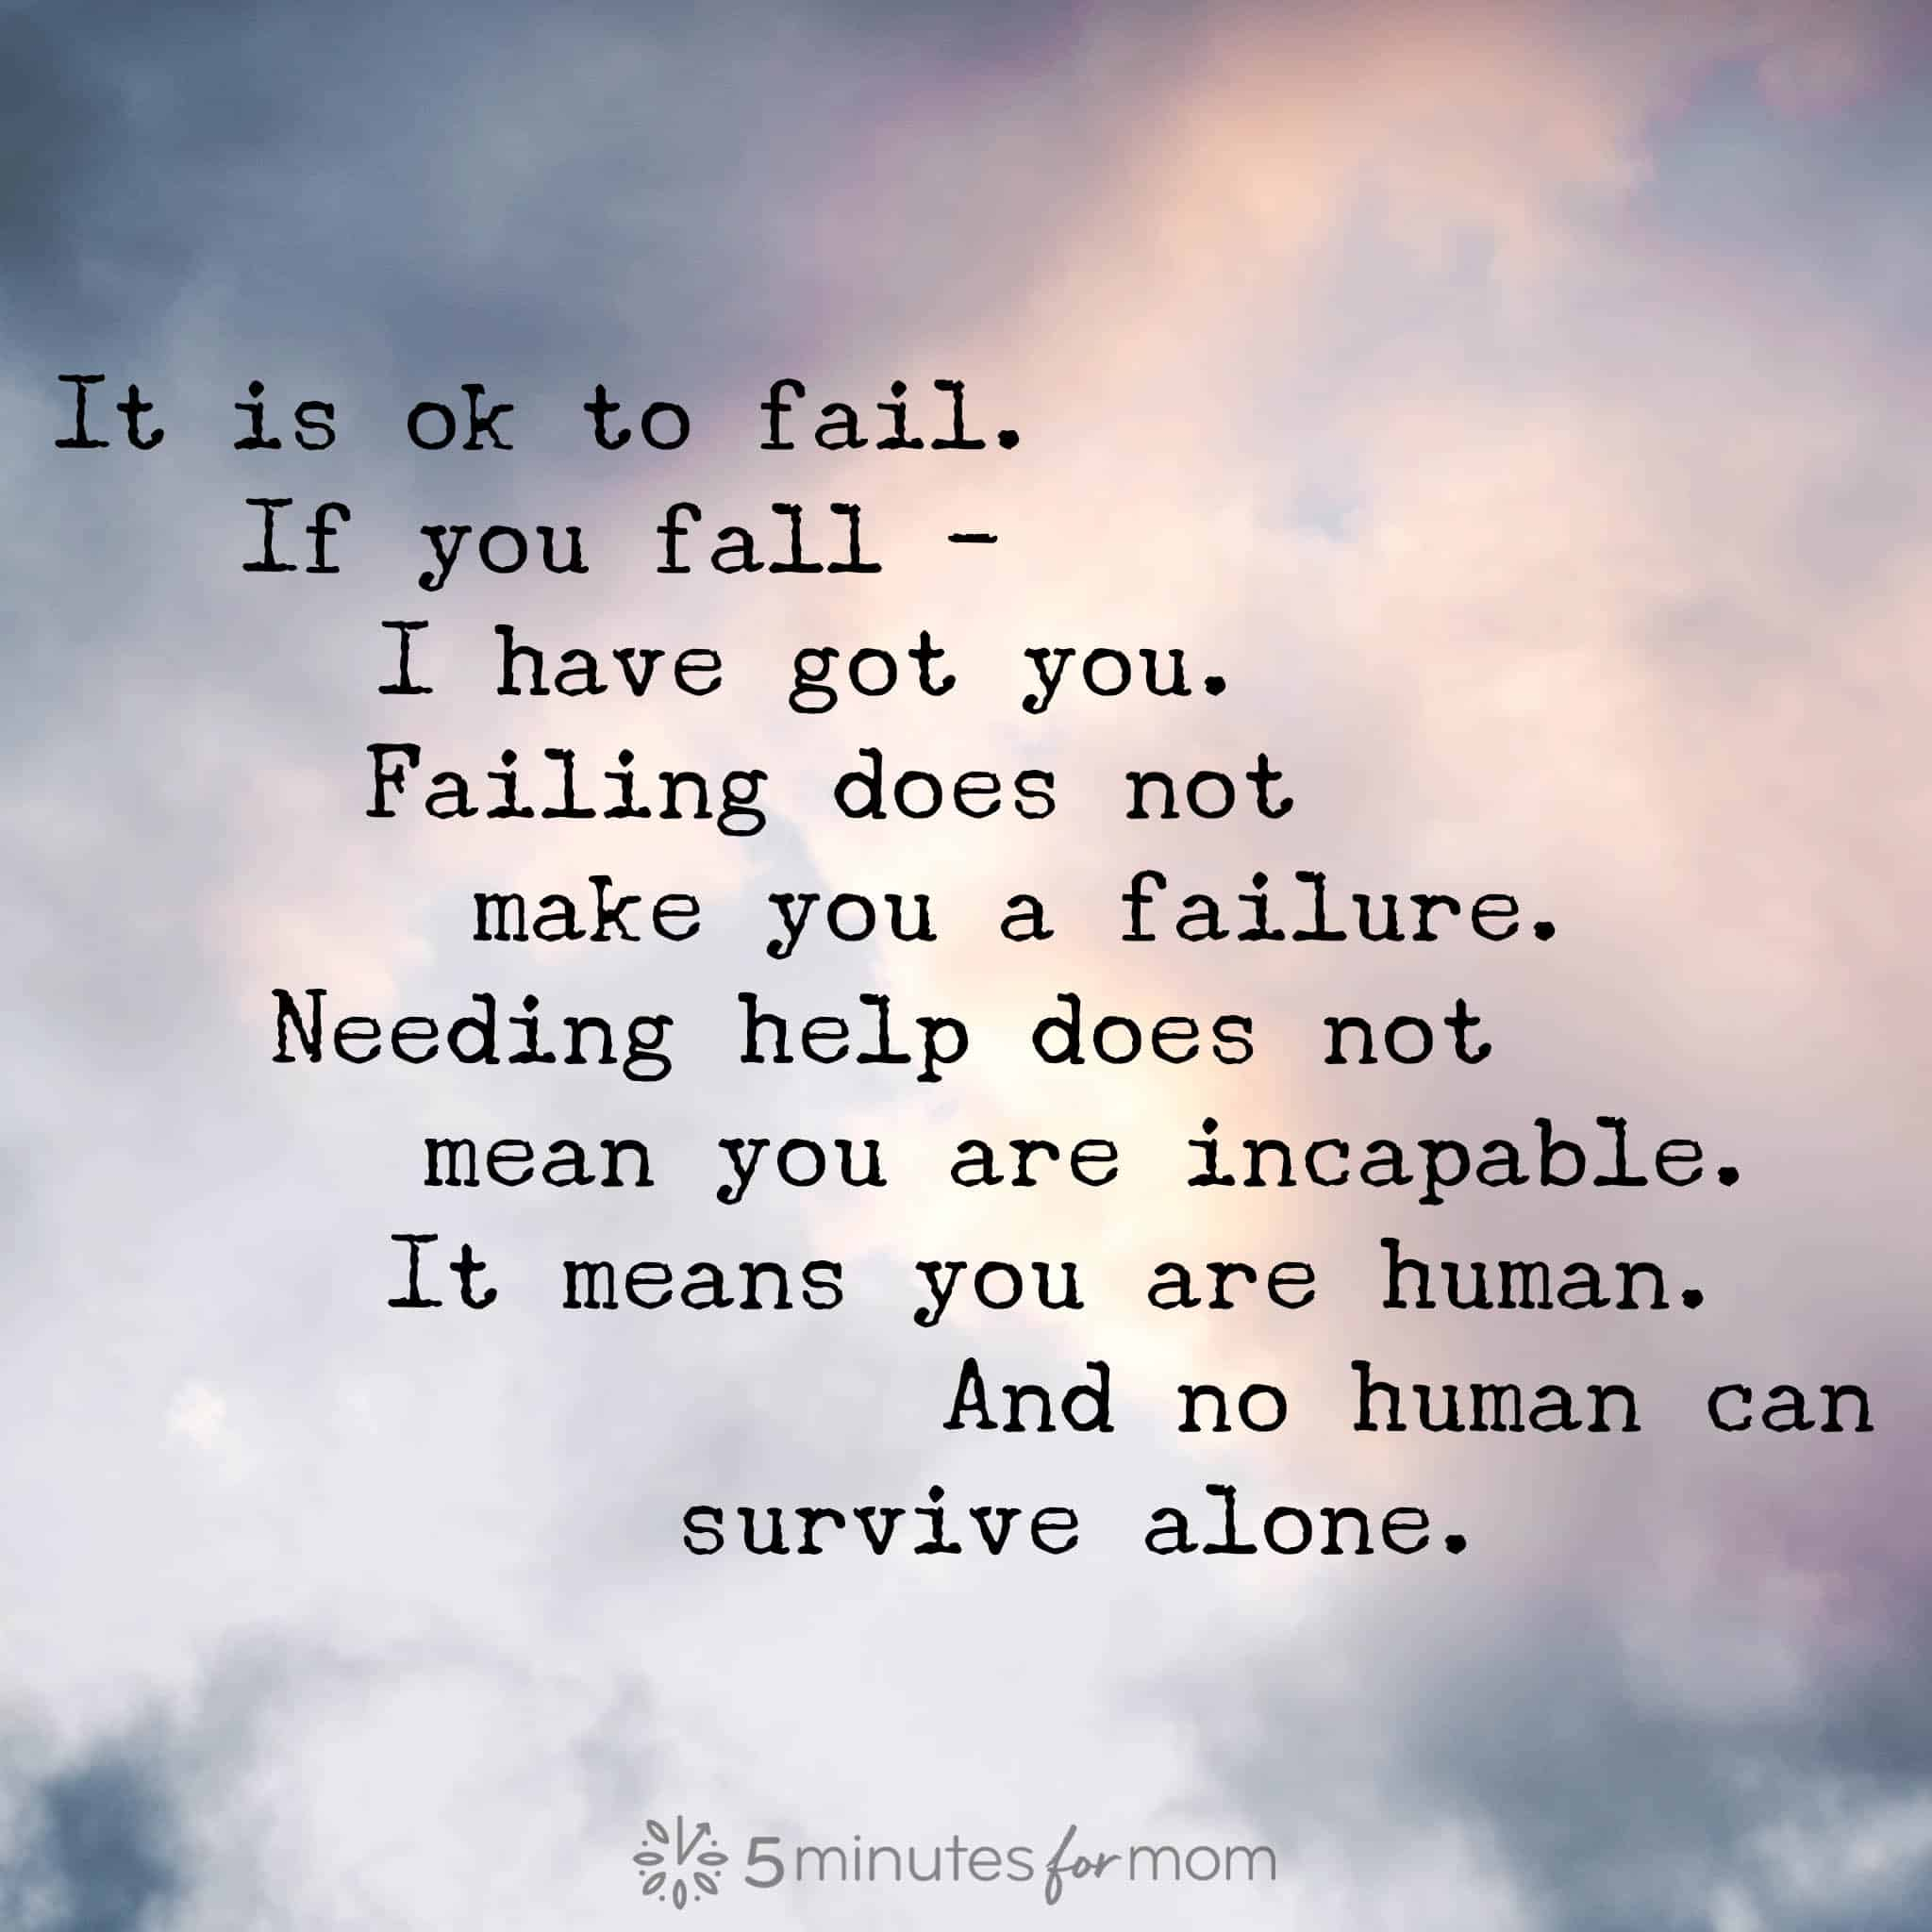 """Photo of clouds with words on it saying """"It is ok to fail. If you fall - I have got you. Failing does not make you a failure. Needing help does not mean you are incapable. It means you are human. And no human can survive alone."""